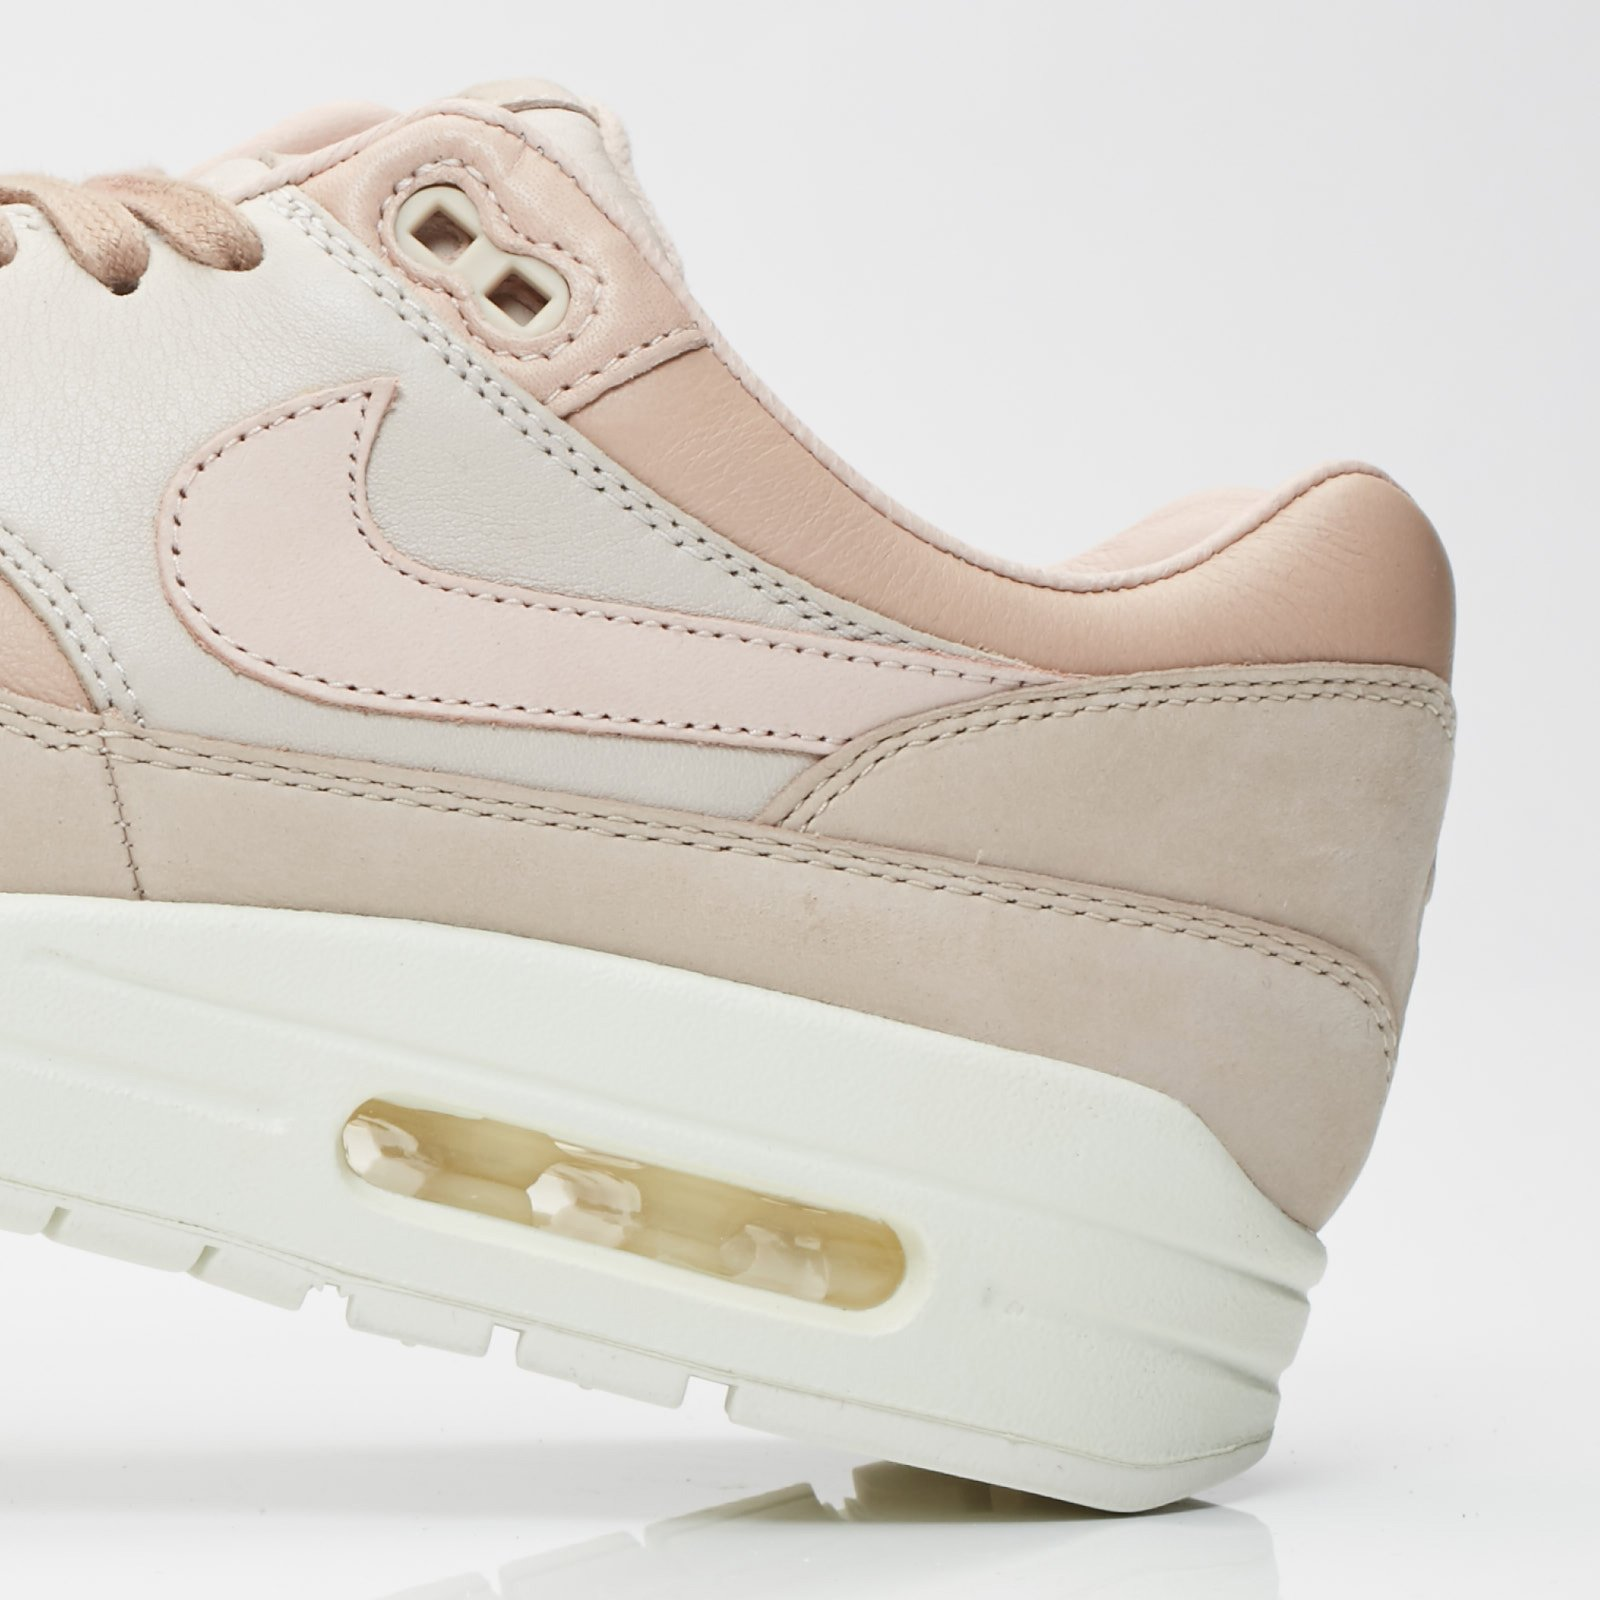 Nike Air Max 1 Pinnacle 859554 201 Sneakersnstuff